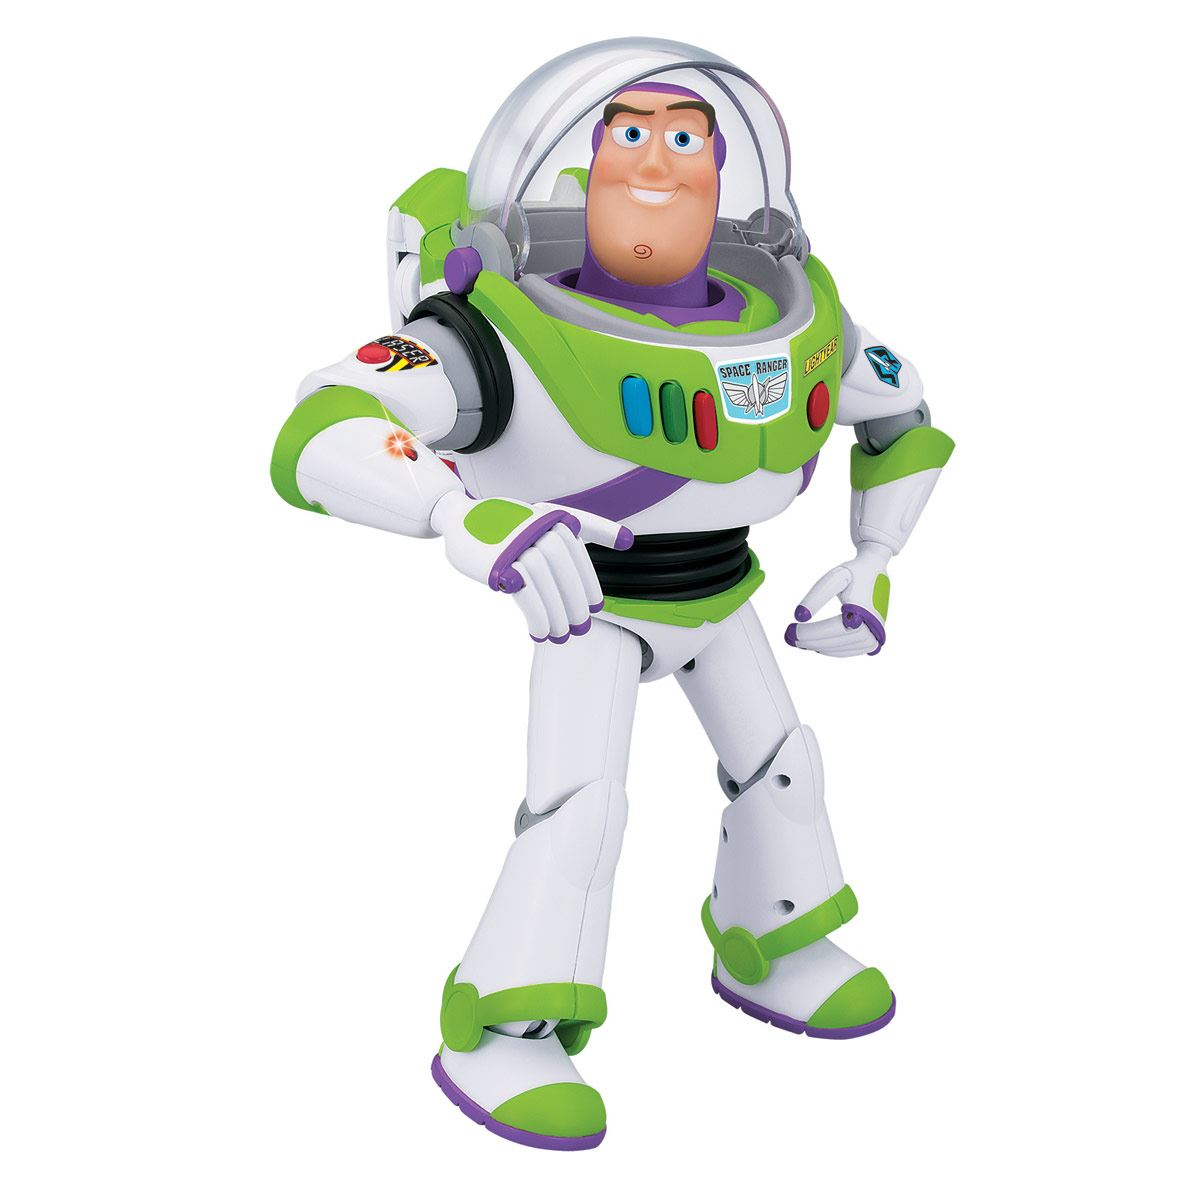 Buzz Lightyear Deluxe Toy Story 4